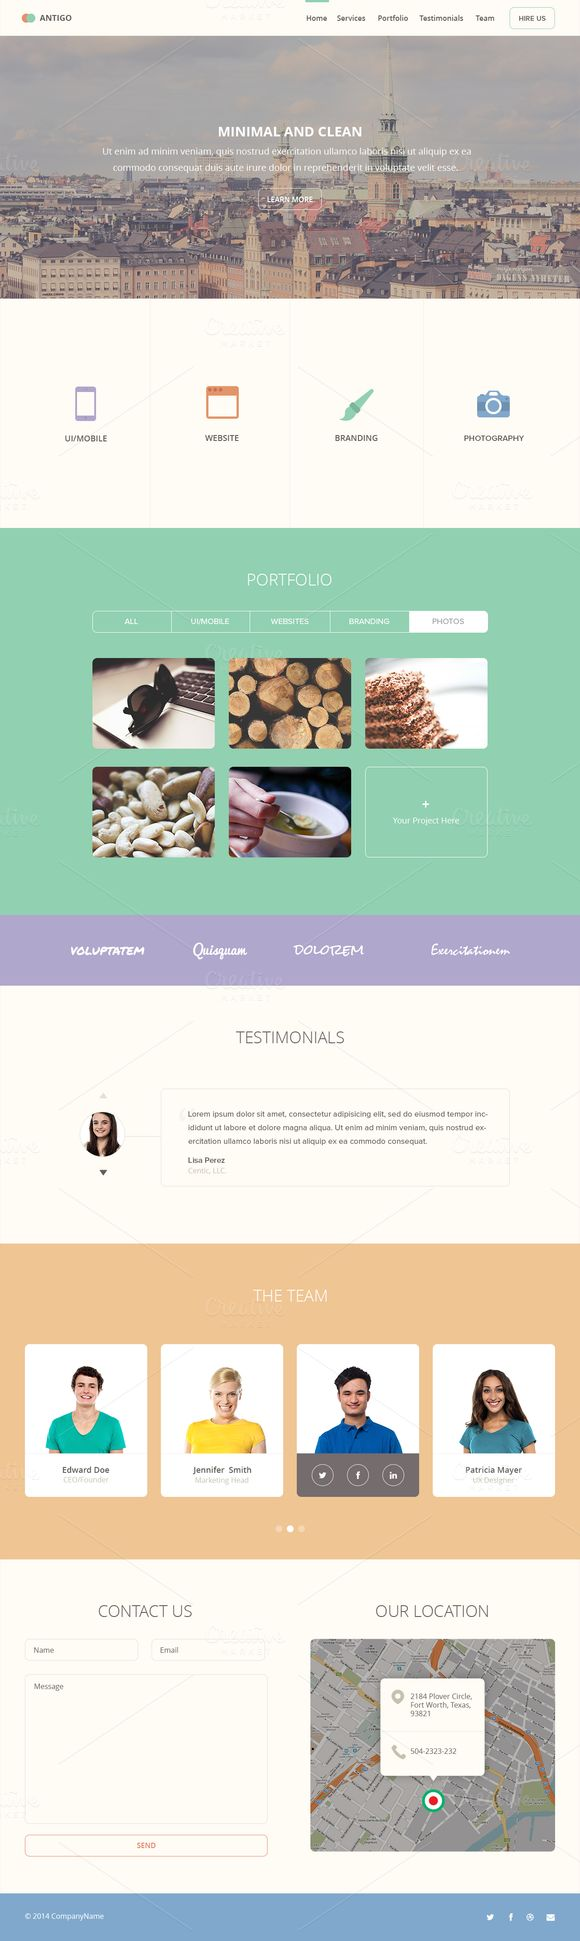 Antigo PSD Web Template Antigo a One Pager PSD Template -Flat Design -Retina Ready -Bootstrap Grid (1280px width - 70px columns) -Sharp and Clean -2 Hero Style